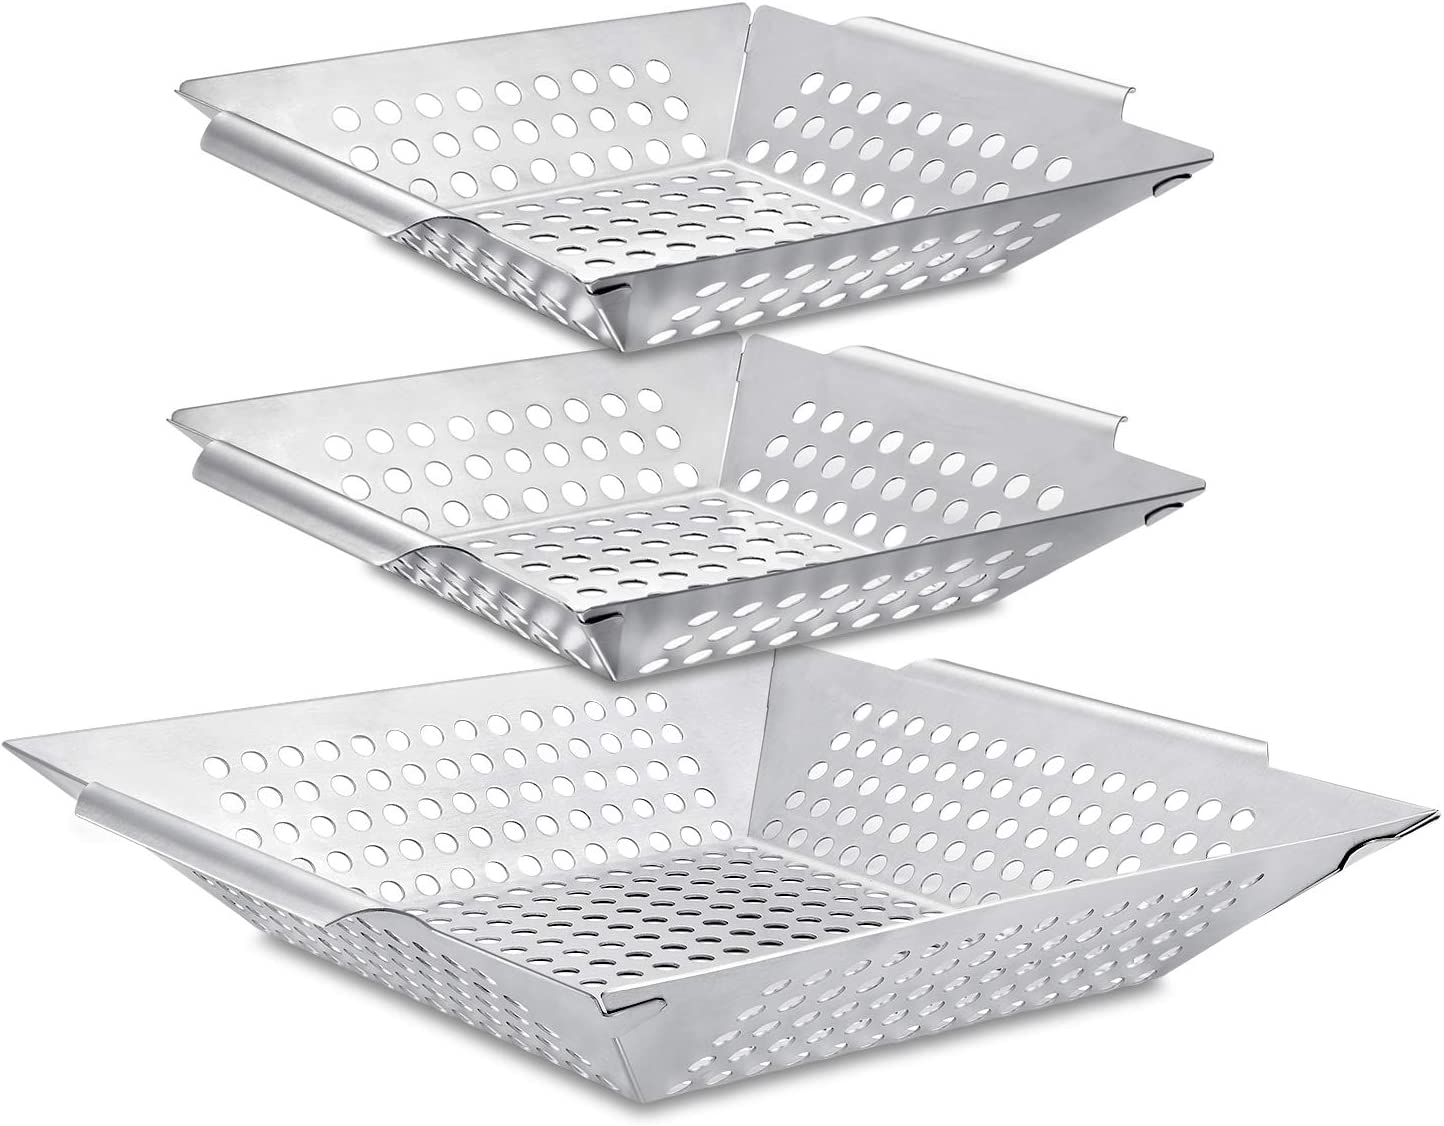 3 Pack Grill Basket Set - Heavy Duty Stainless Steel Grilling Accessories,Grilling Wok for Vegetable, Kabob, Shrimp, Fit All Grill